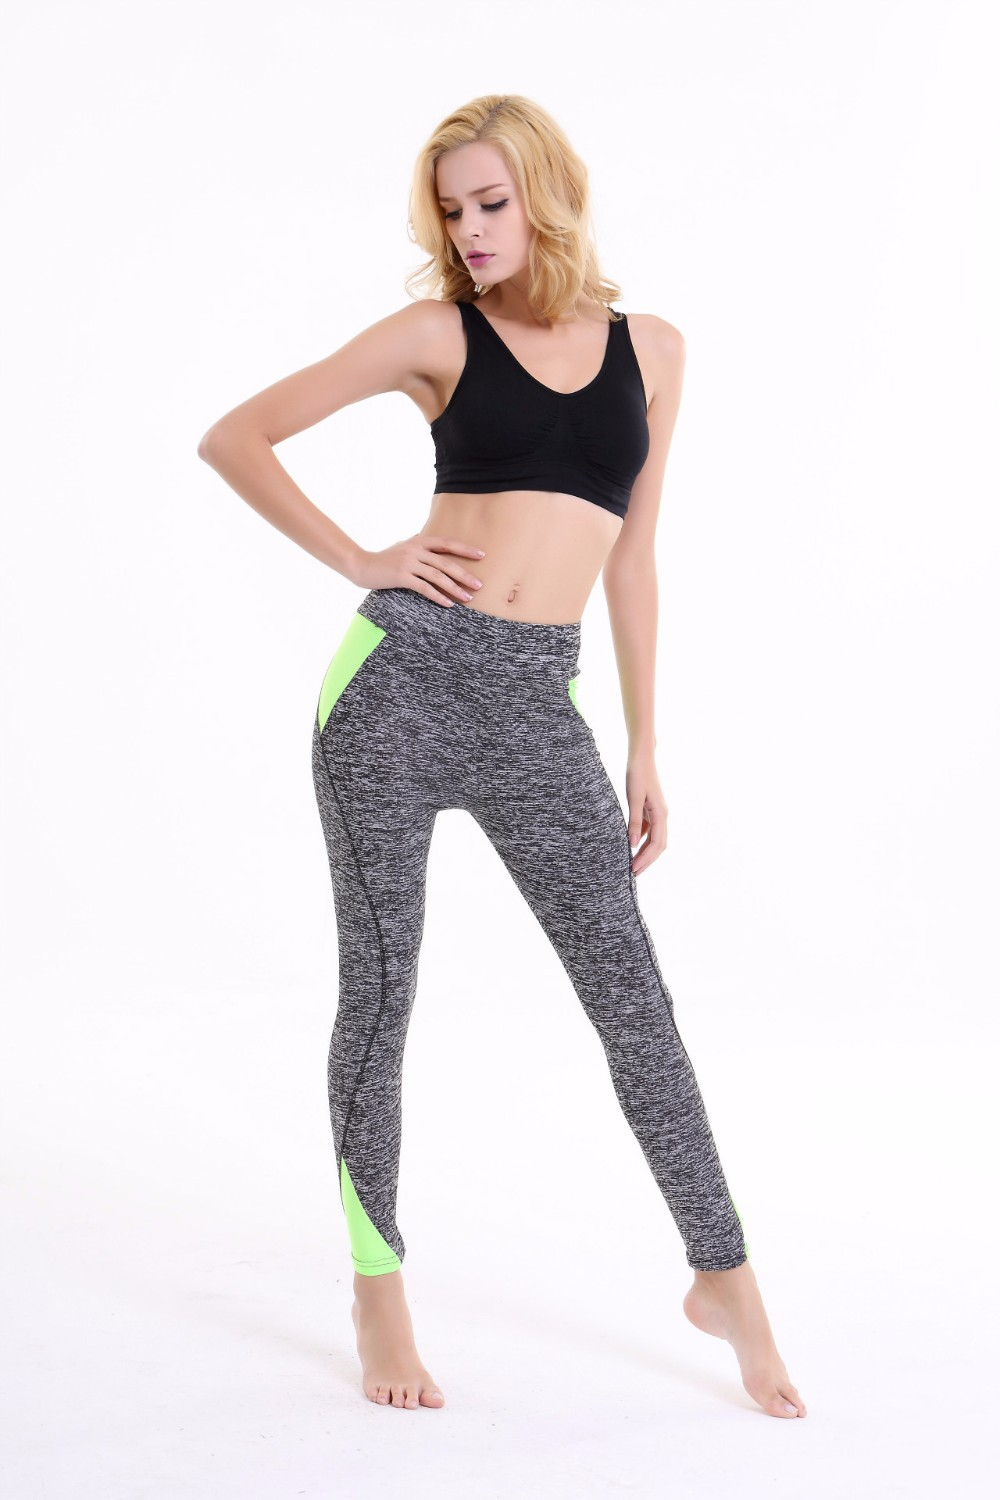 Alibaba Women's Long Fitness Yoga Legging Sports Pants Customize Logo